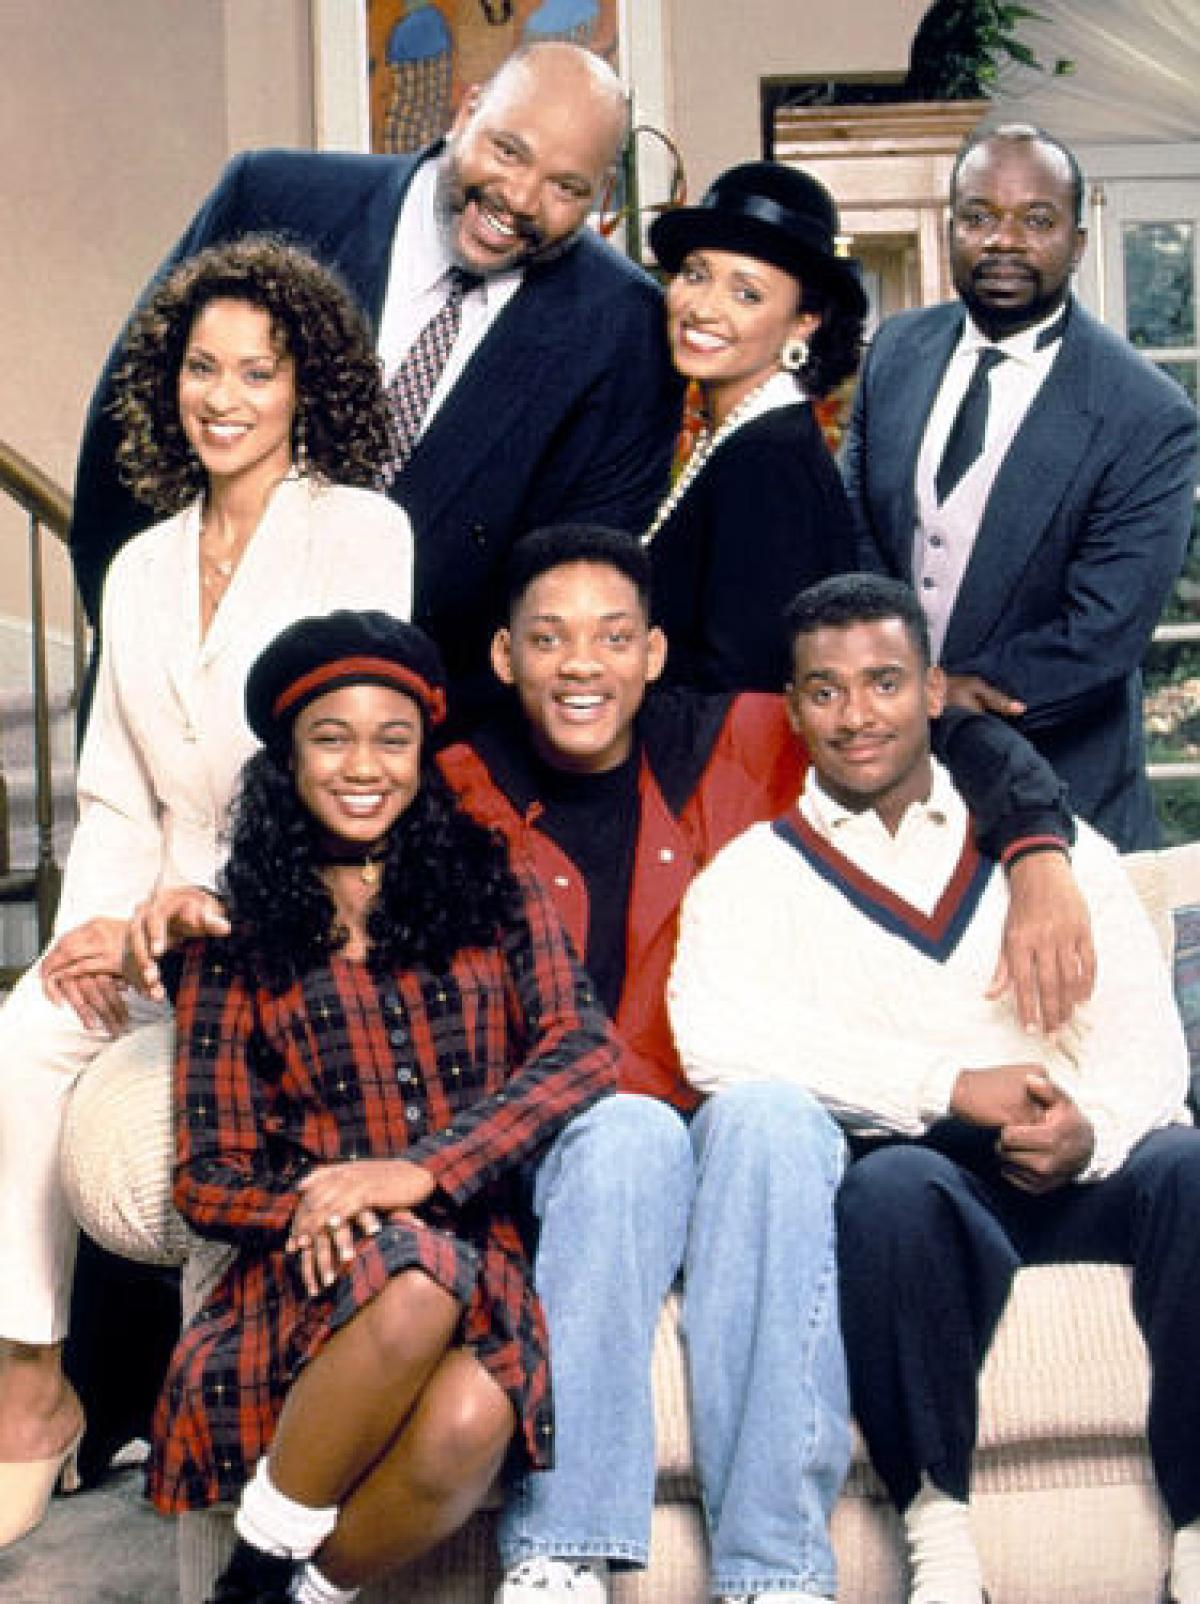 fresh prince of bel air That fresh prince of bel-air revival some fans have been hoping would  eventually happen is still not happening (yet) but if it did, star will.